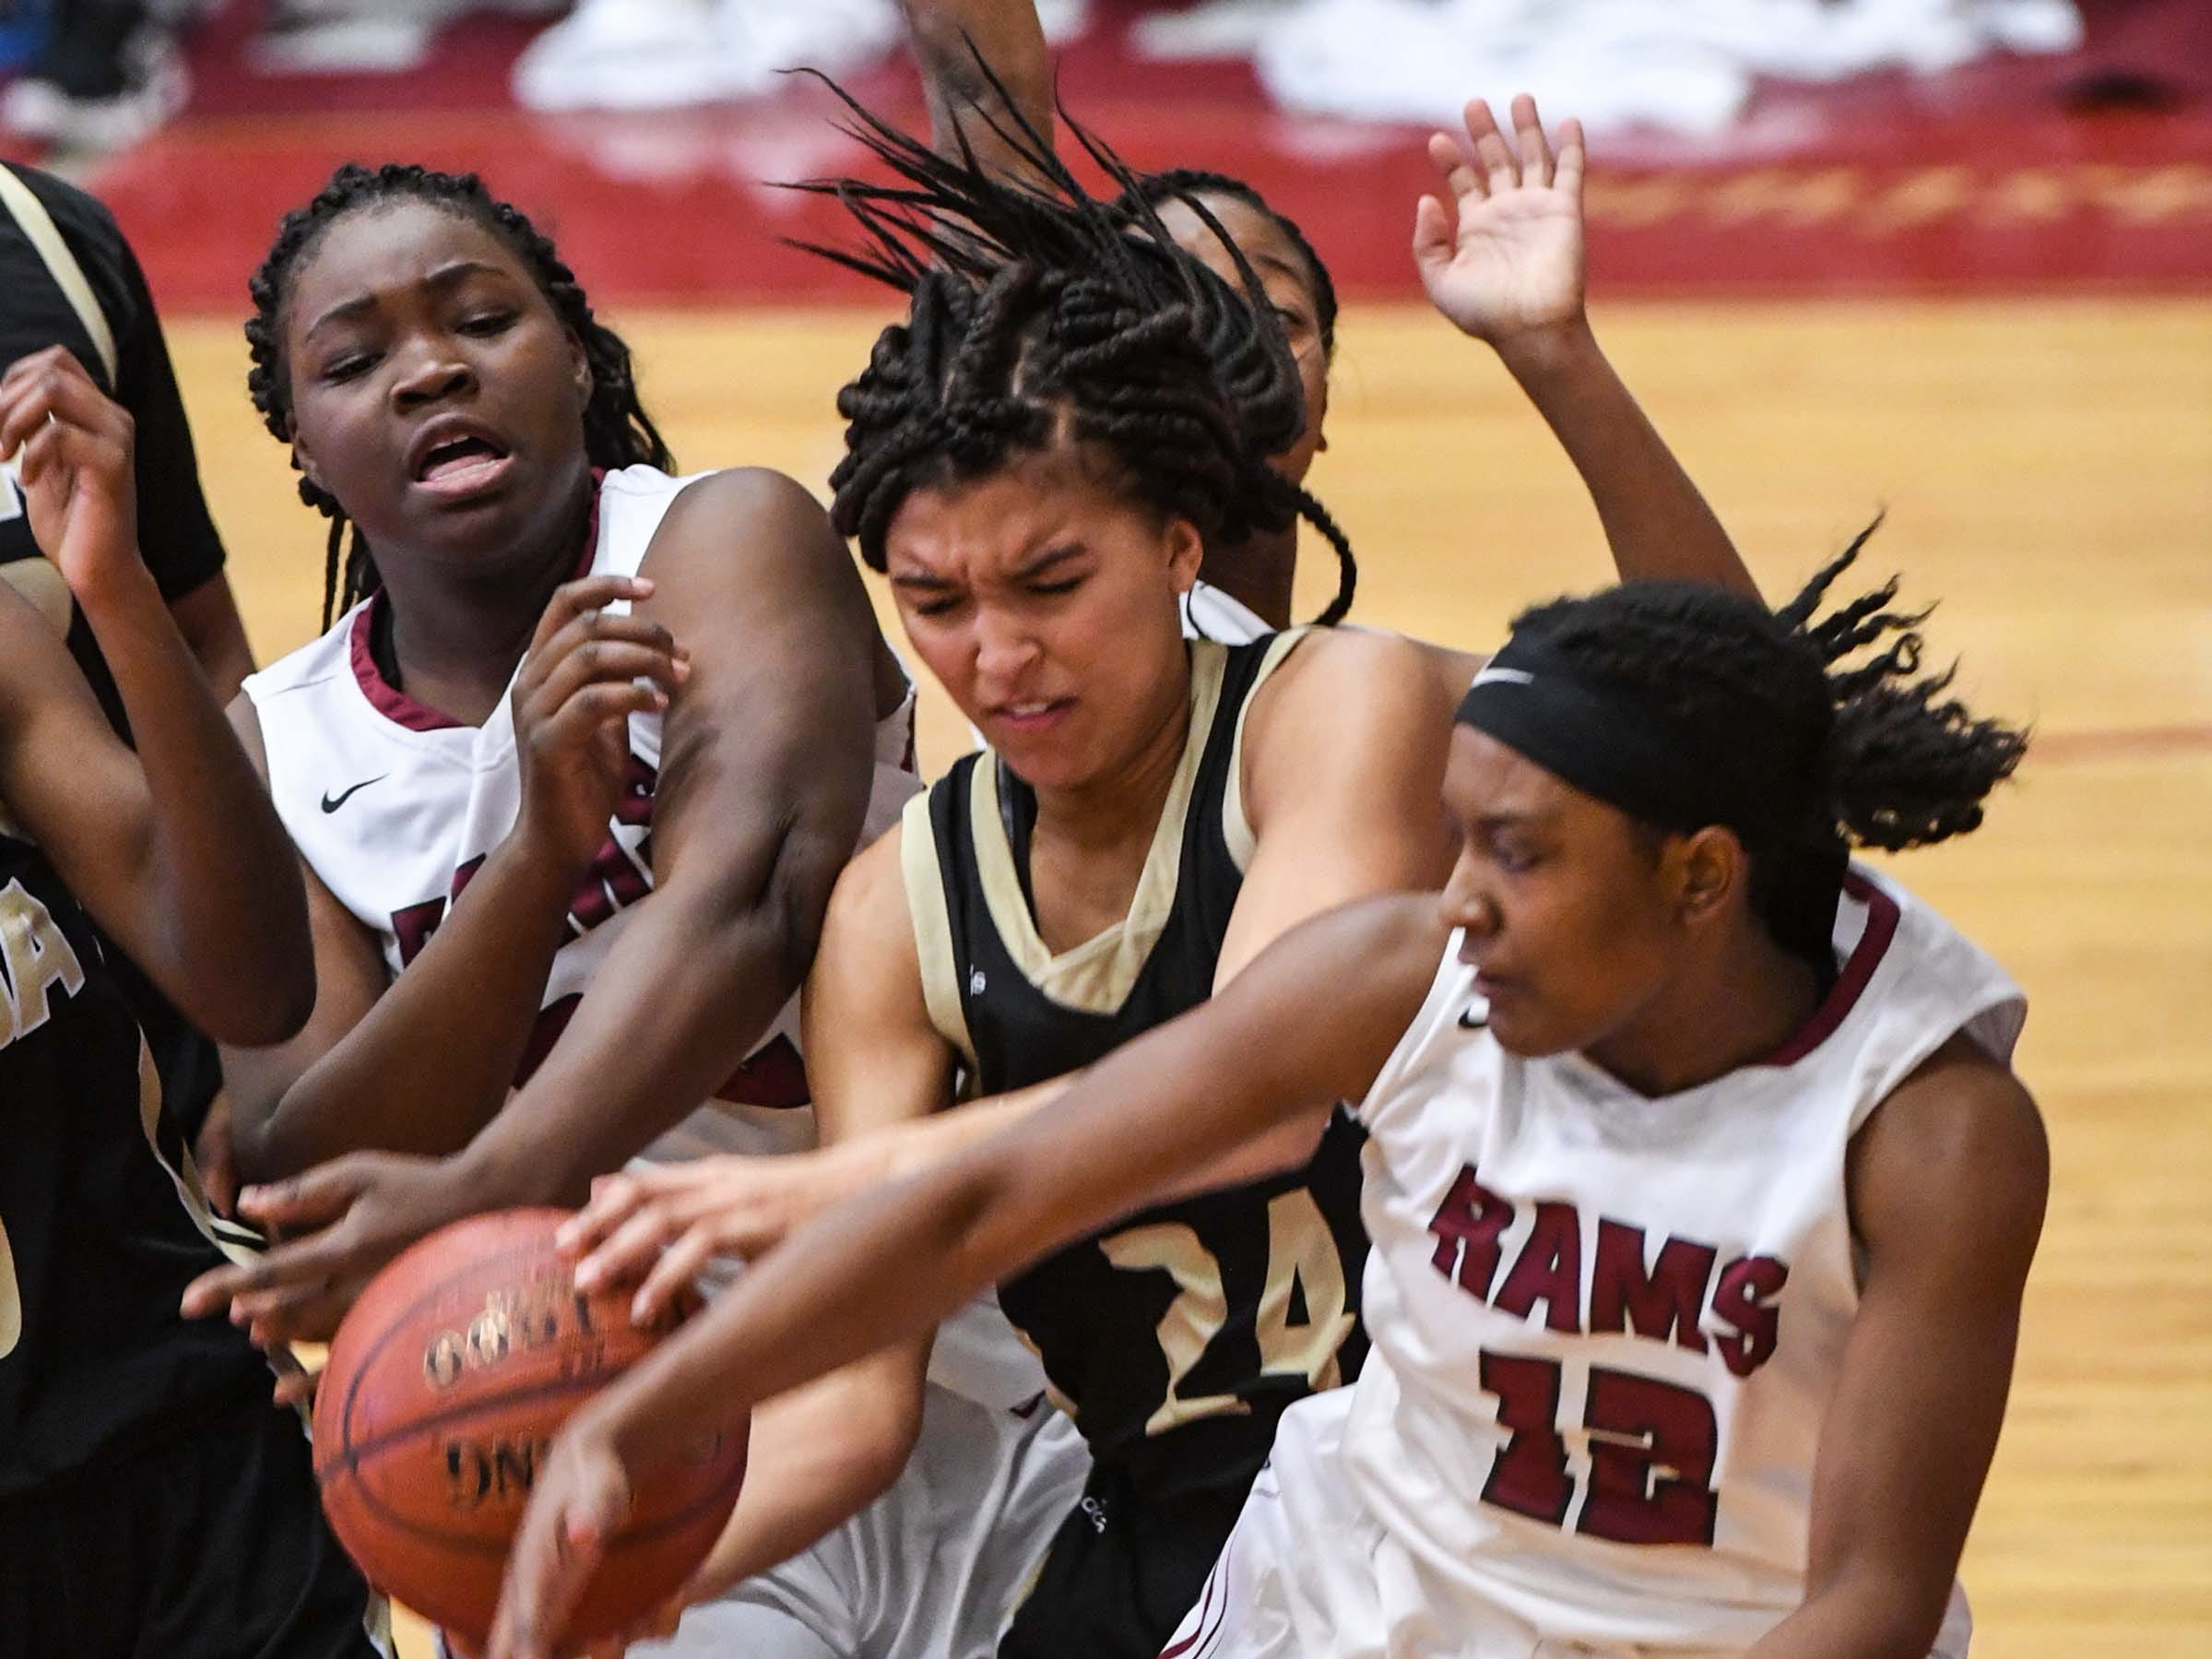 TL Hanna junior Maleia Bracone(24) rebounds around Westside sophomore Chyna Dixon(22) and Westside freshman Branya Pruitt(12) during the first quarter at Westside High School in Anderson on Friday.